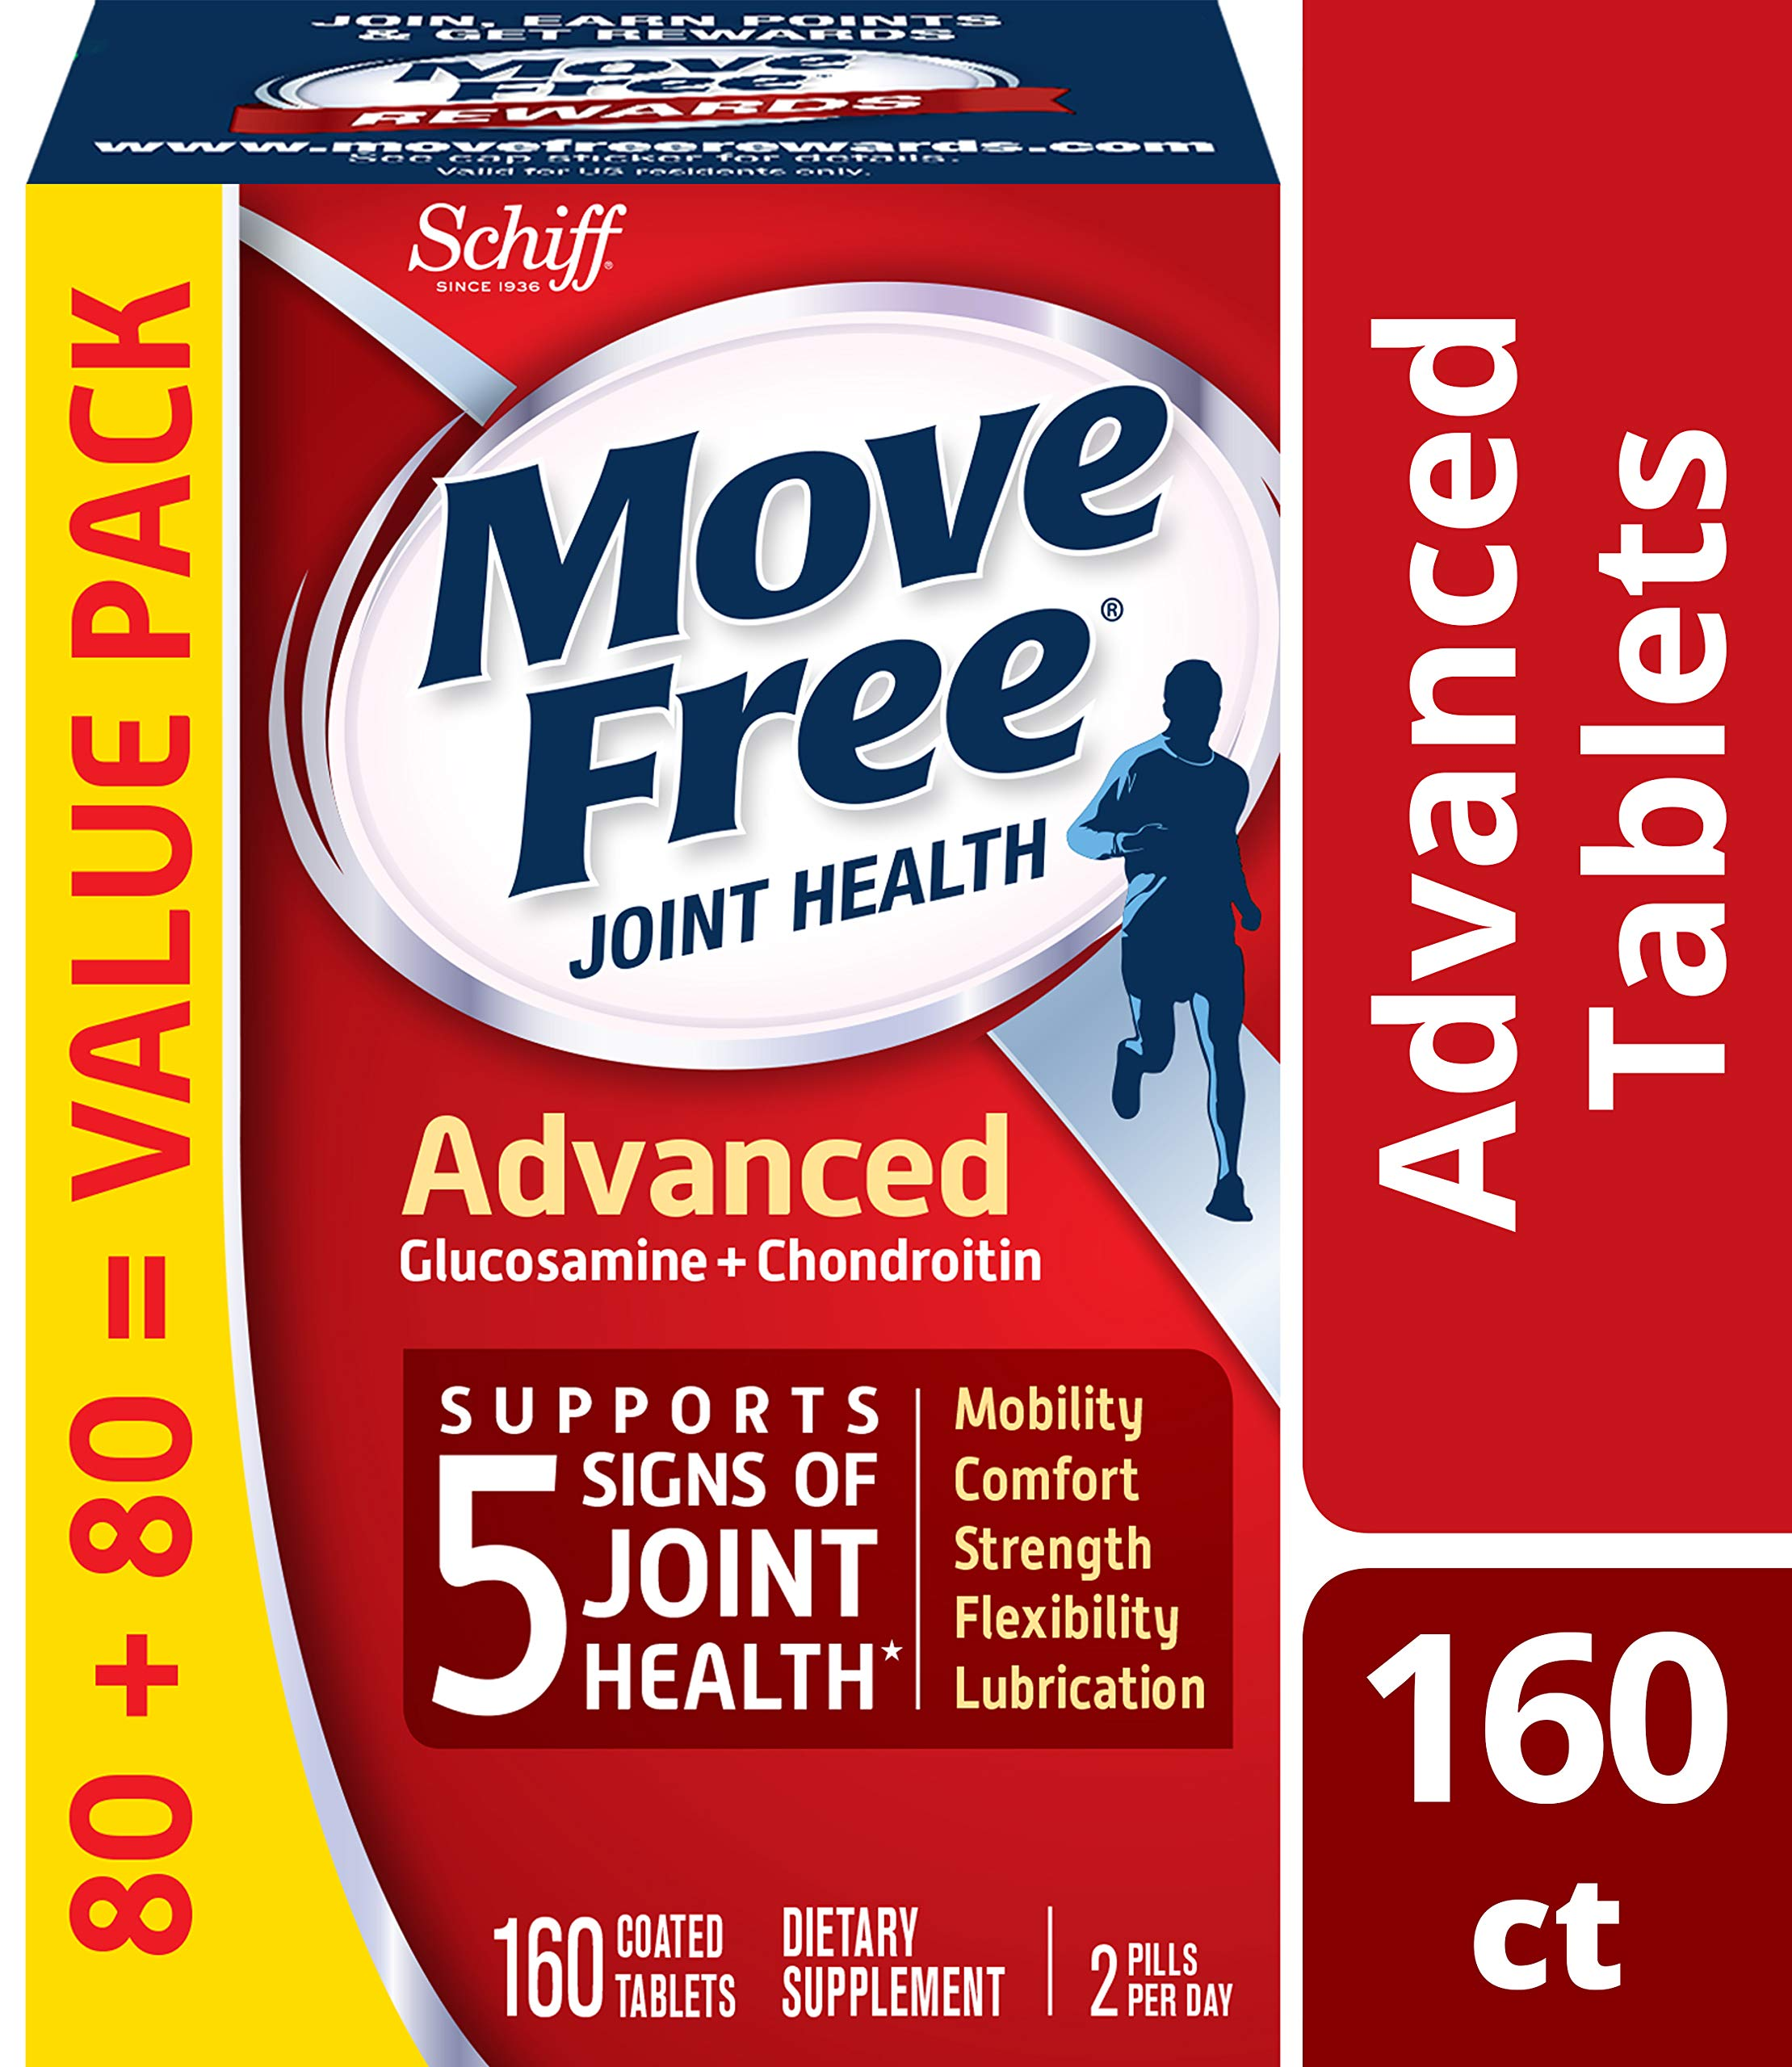 Glucosamine & Chondroitin Advanced Joint Health Supplement Tablets, Move Free (160 count in a bottle), Supports Mobility, Flexibility, Strength, Lubrication and Comfort by Move Free